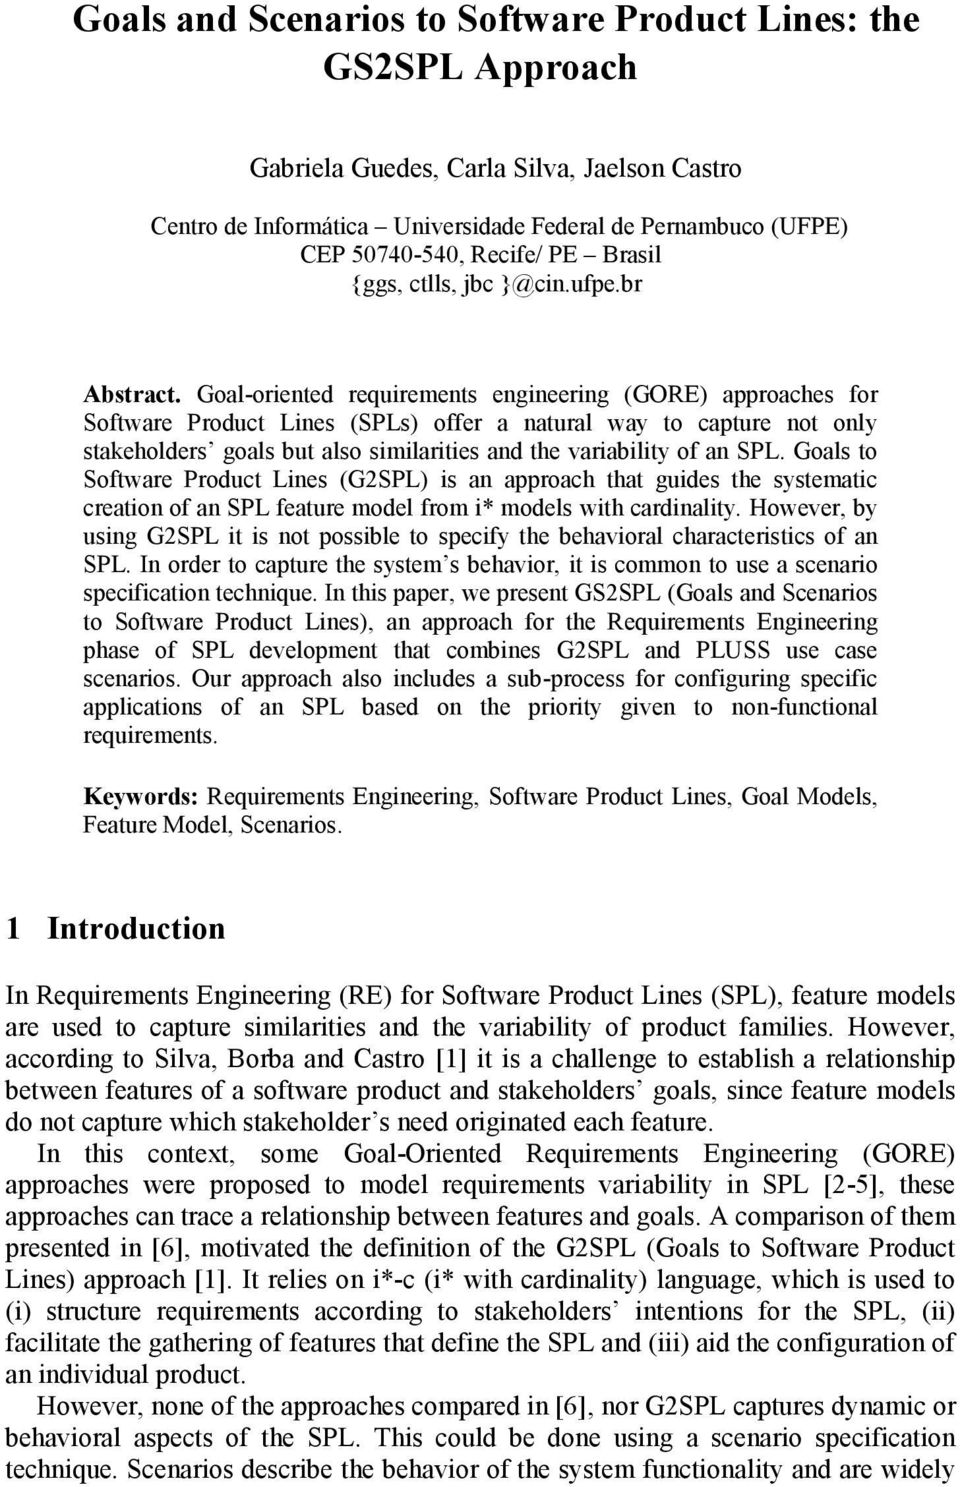 Goal-oriented requirements engineering (GORE) approaches for Software Product Lines (SPLs) offer a natural way to capture not only stakeholders goals but also similarities and the variability of an